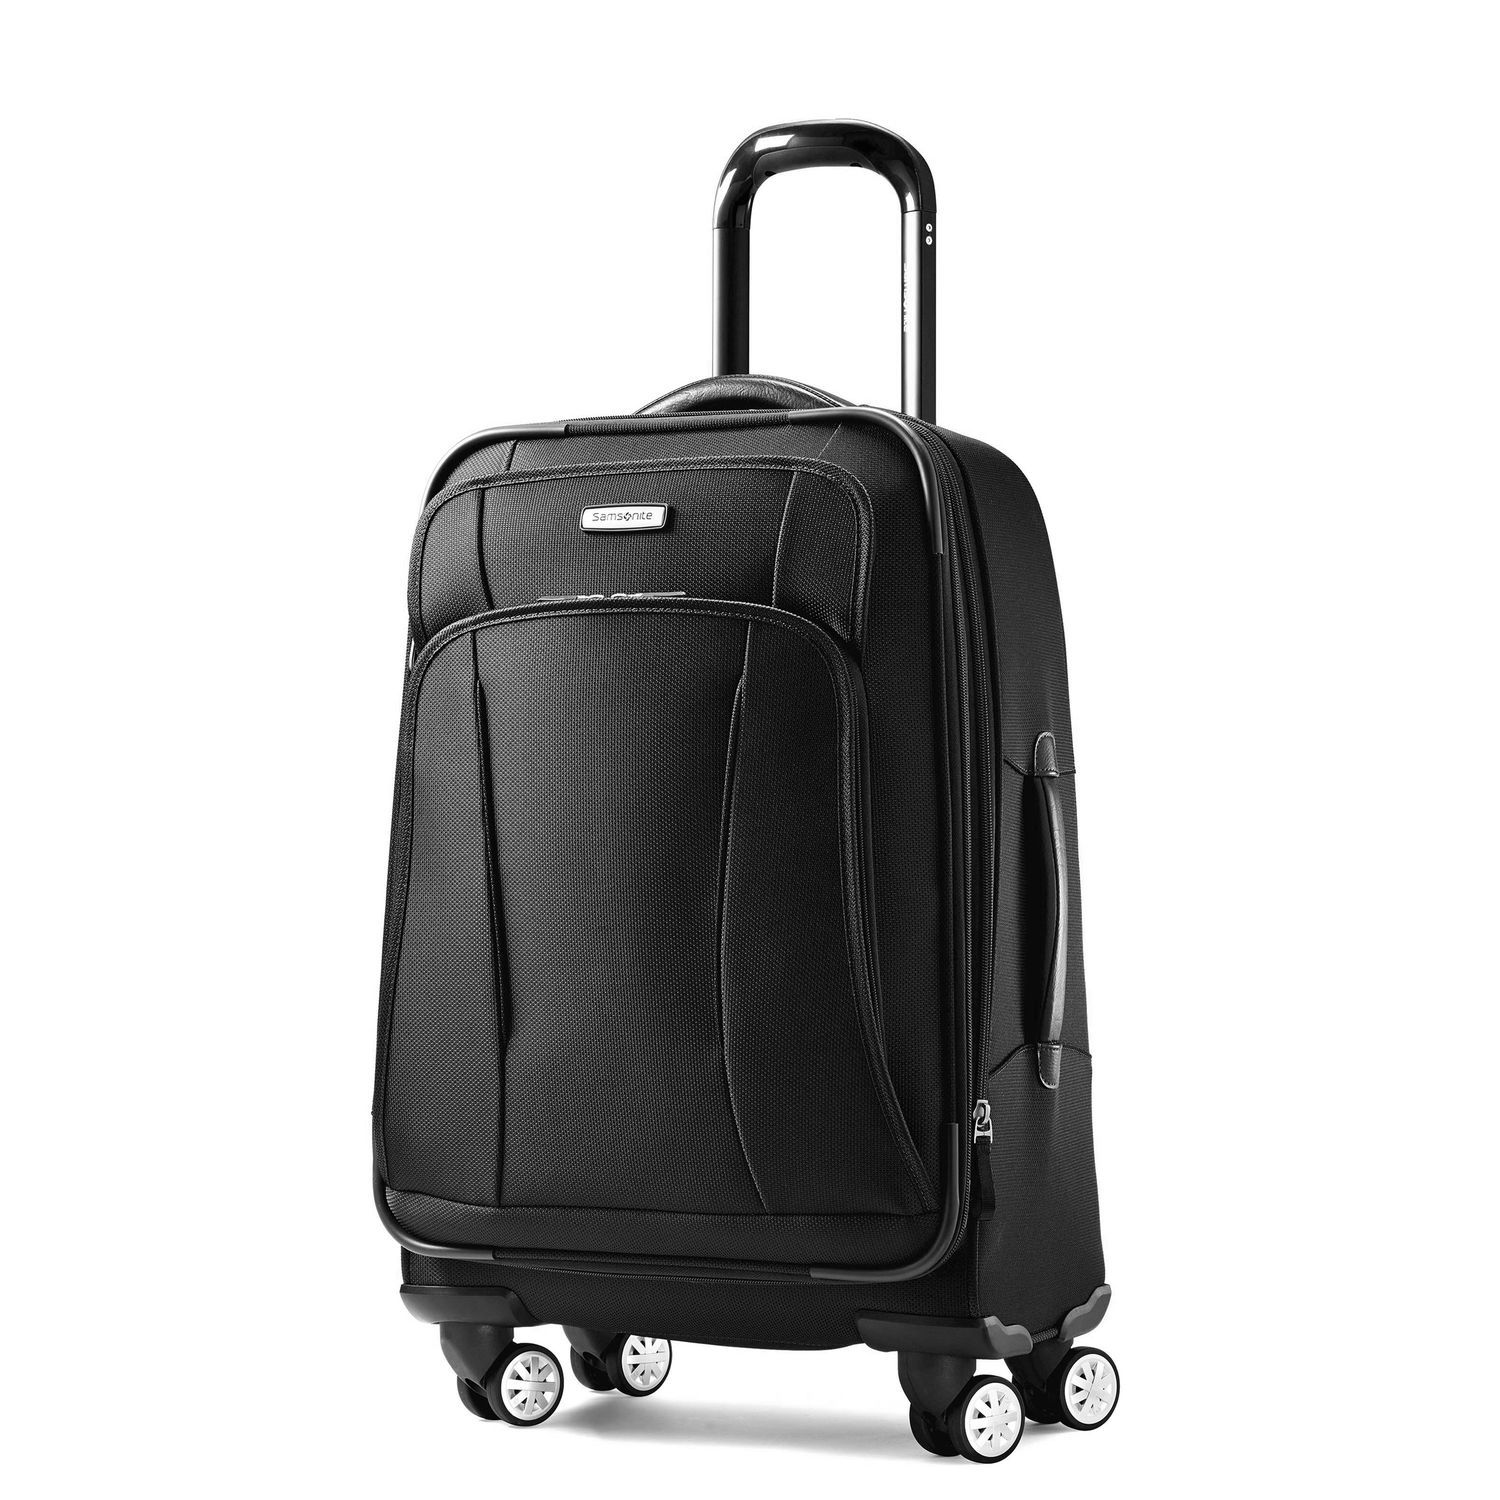 294a7f44008e in the color Black.   Luggage & Travel   Travel luggage, Luggage ...